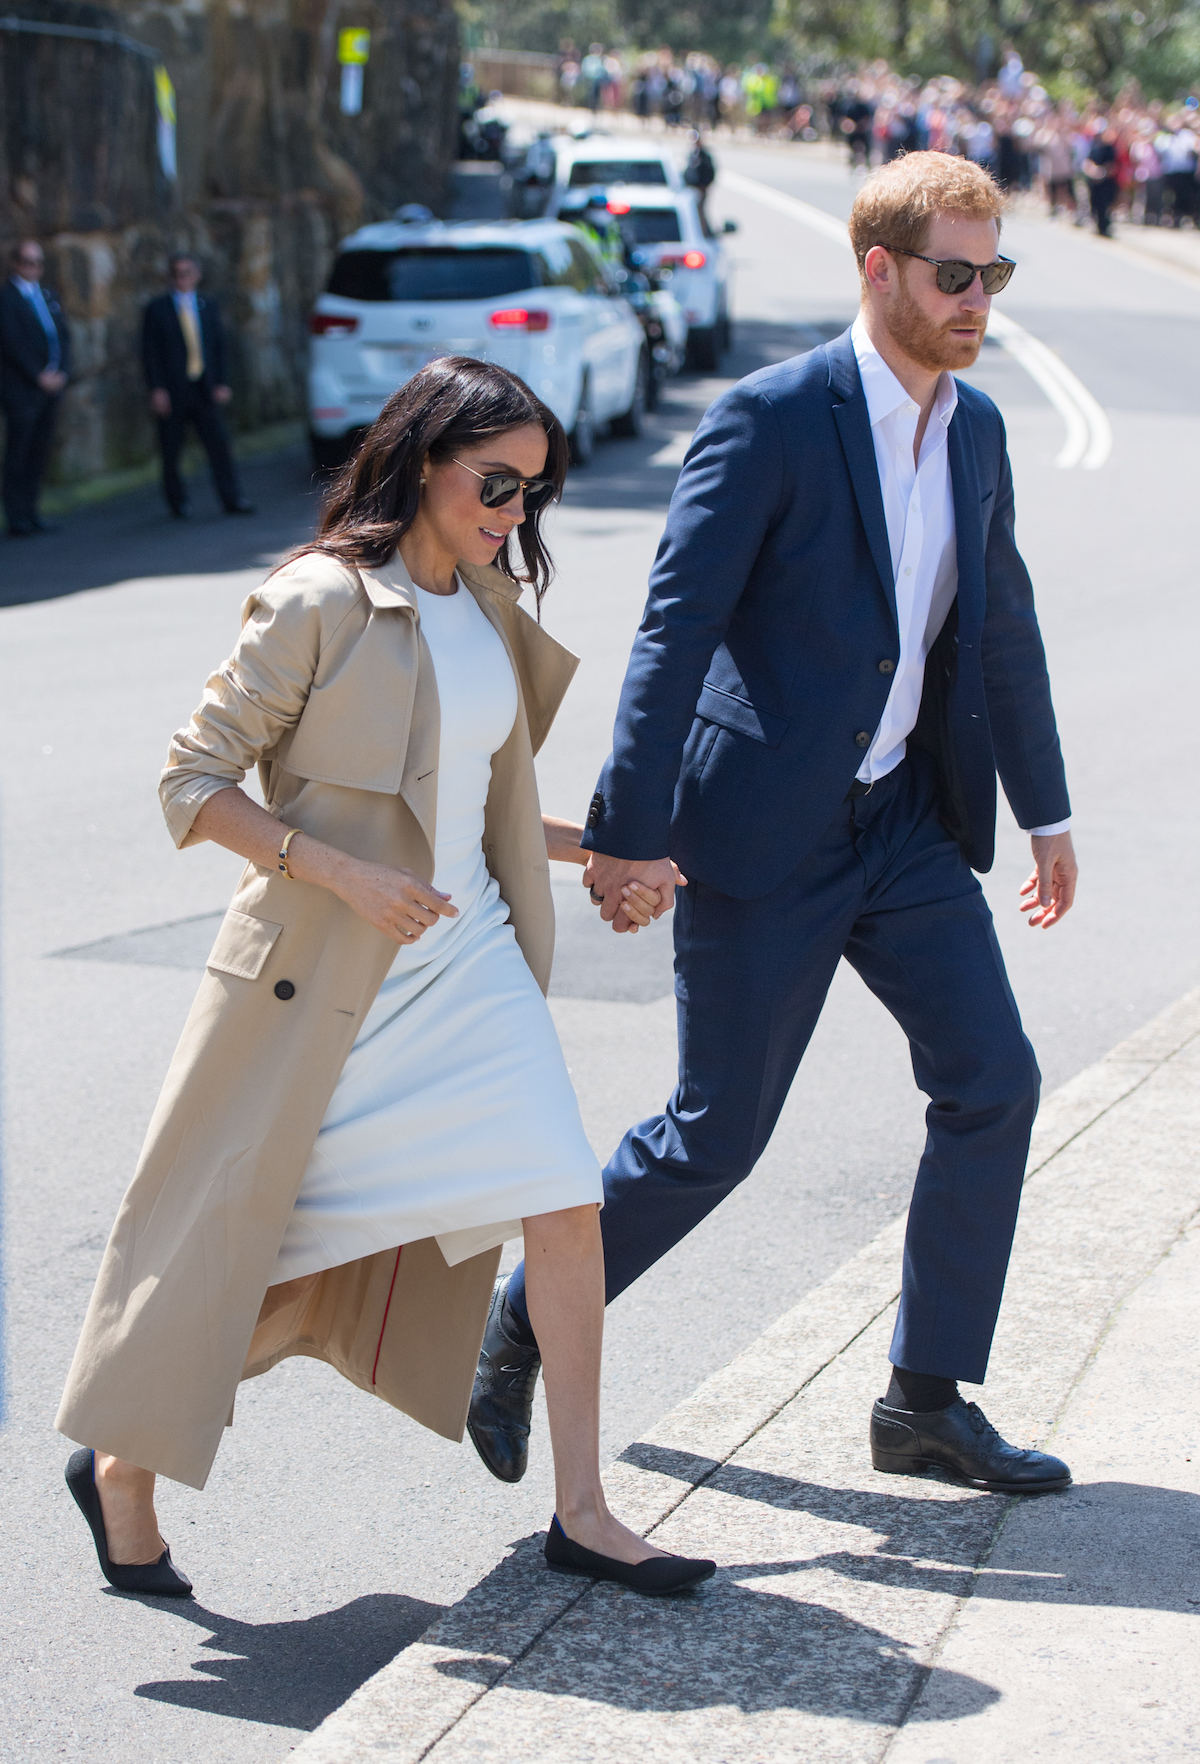 Meghan Markle's Comfortable Rothy's Are The Best Everyday